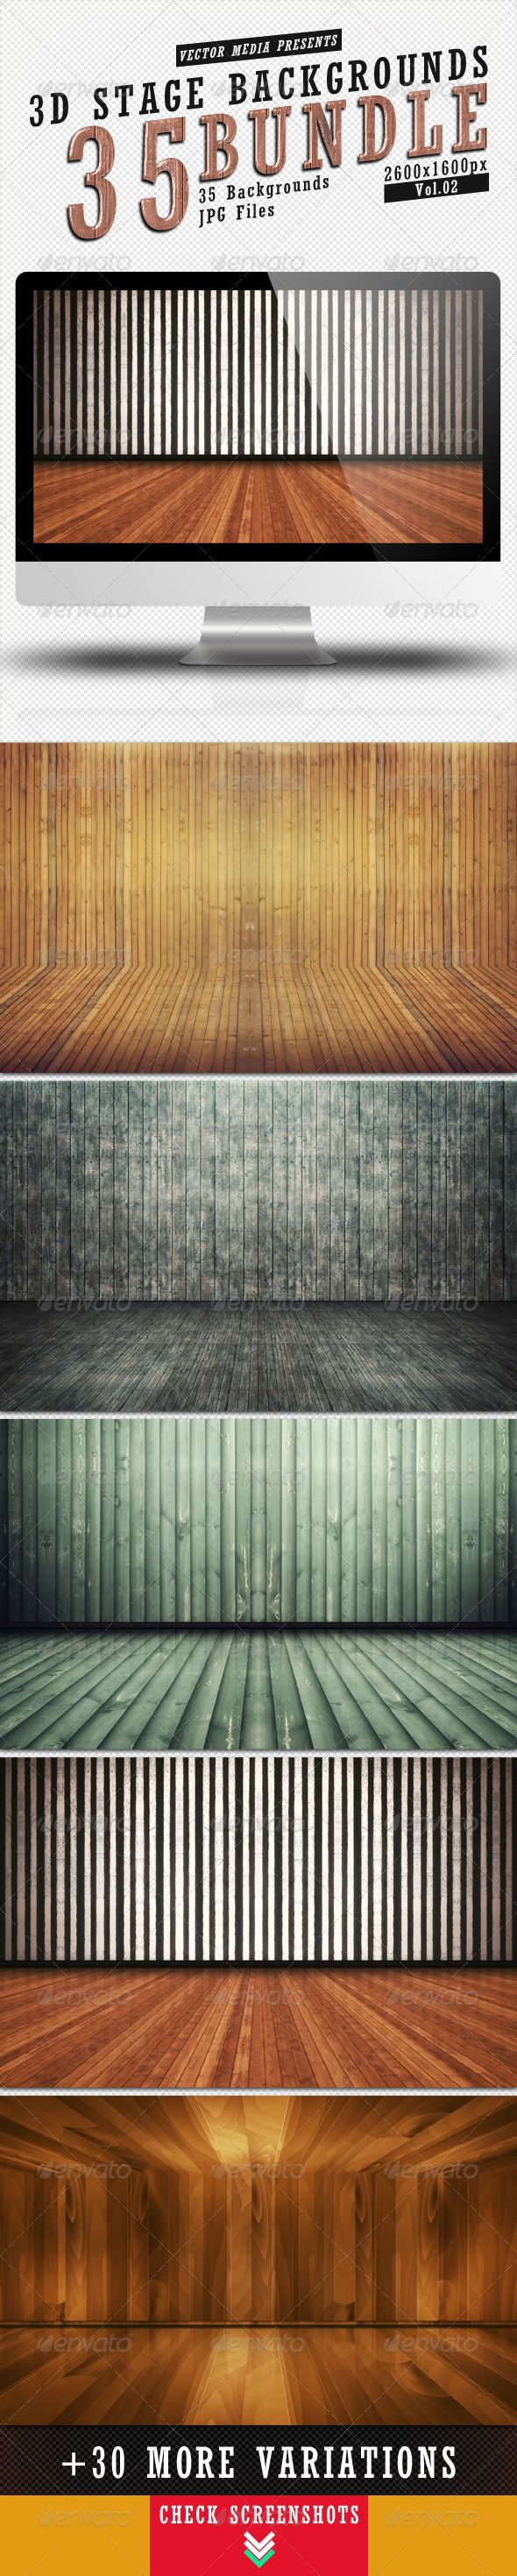 3D Stage Backgrounds - Bundle Vol.2